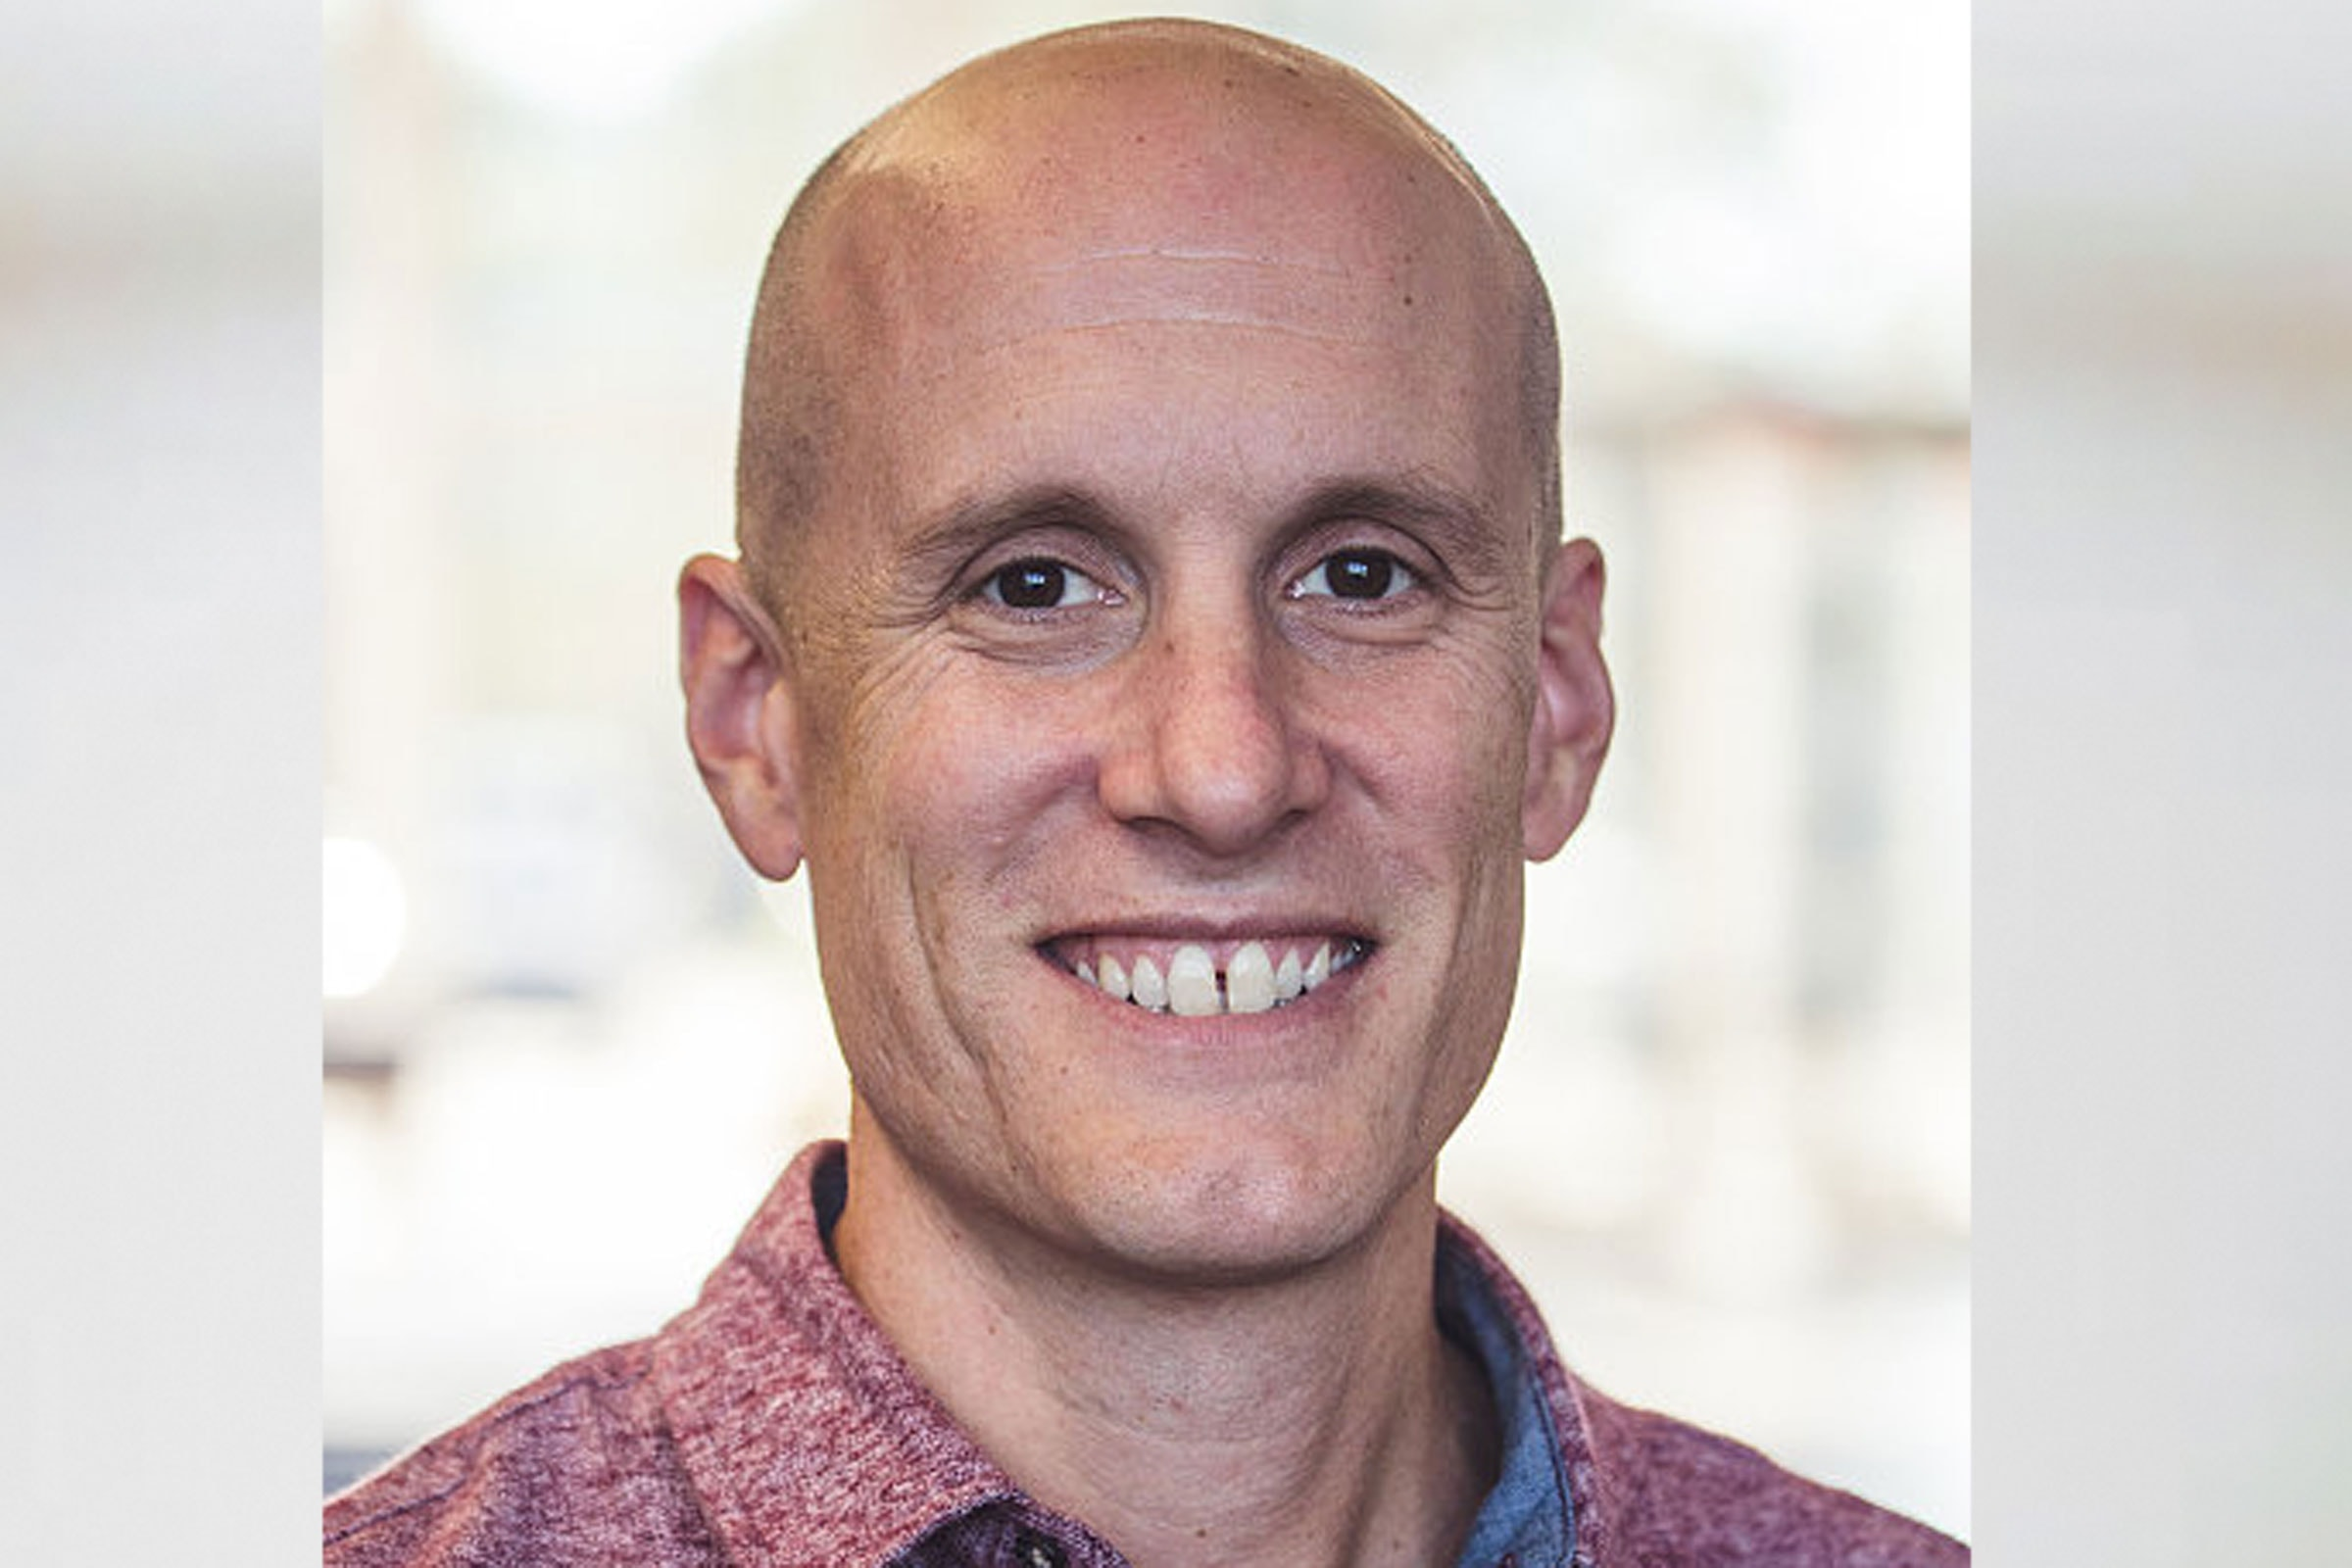 The Rev. Matt Miofsky of The Gathering United Methodist Church, St. Louis, Missouri, is the author of 'Let Go: Move beyond fear into the life God wants for you.' Photo courtesy United Methodist Publishing House.